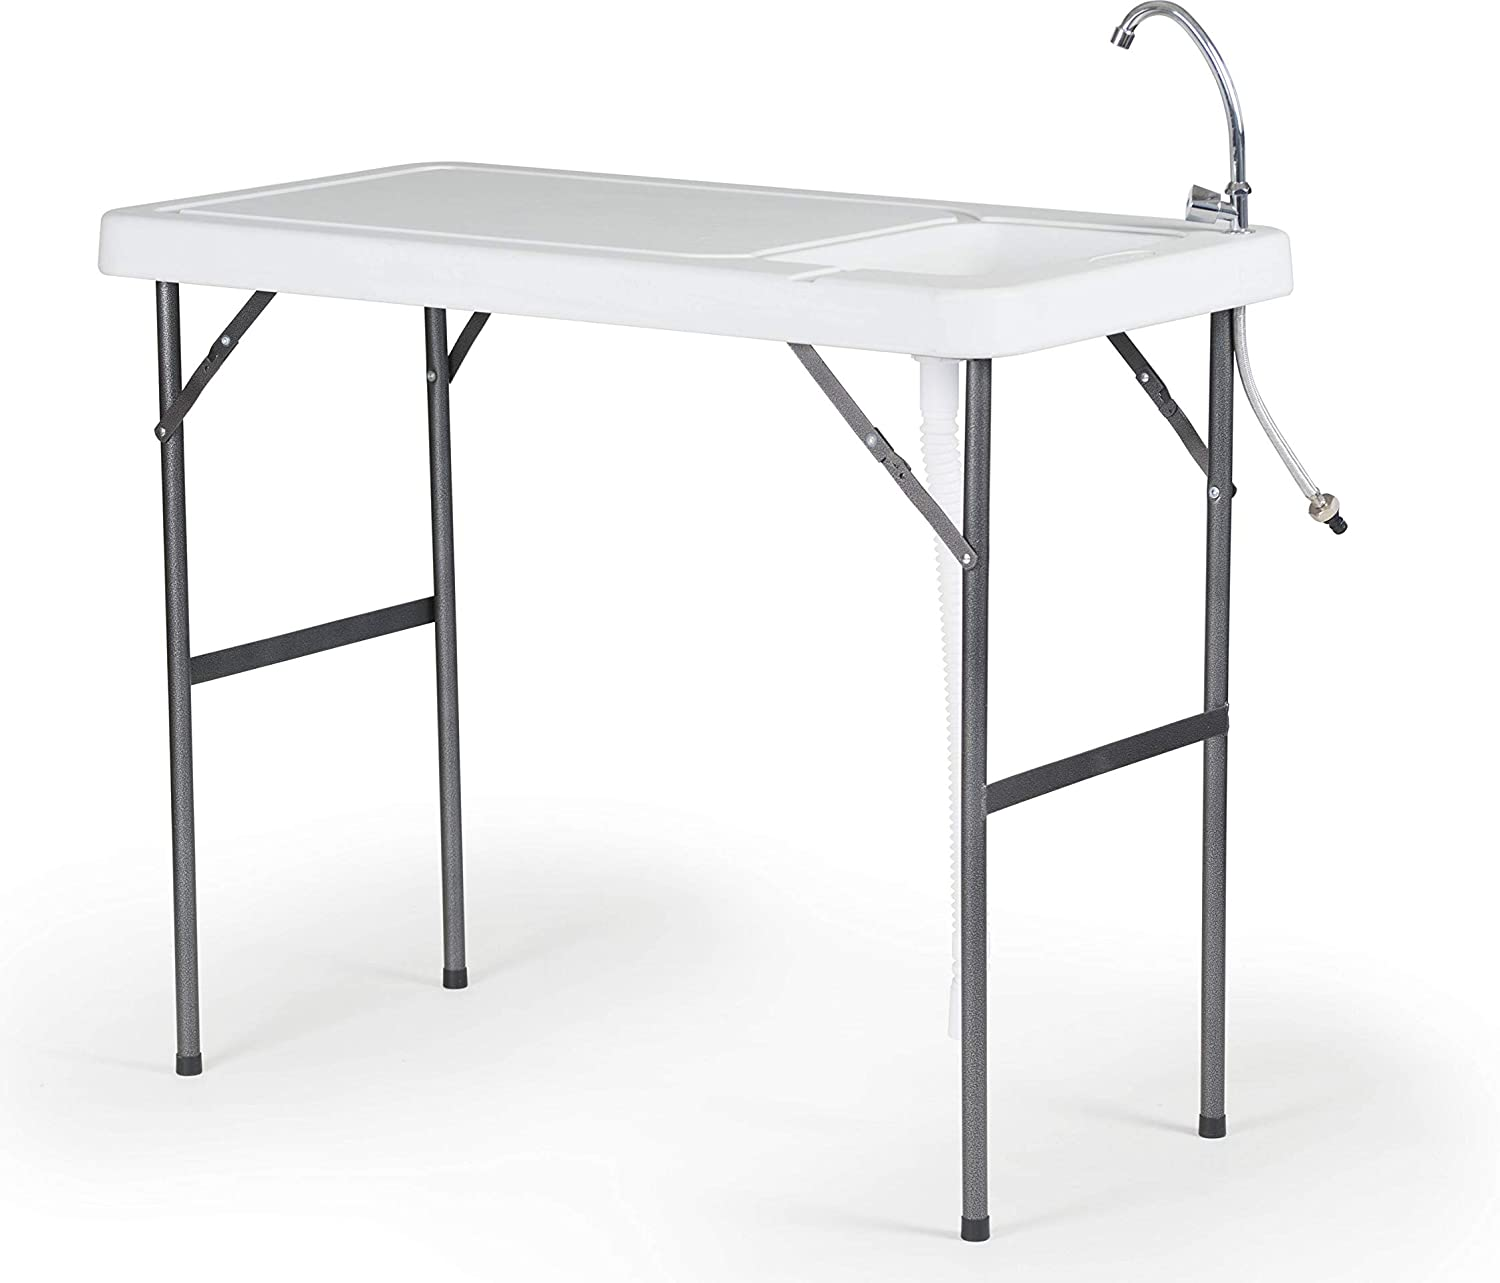 Old Cedar Outfitters Lightweight Folding Fillet Table with Locking Legs, Drain Assembly and Faucet, FT-001, White,Basic